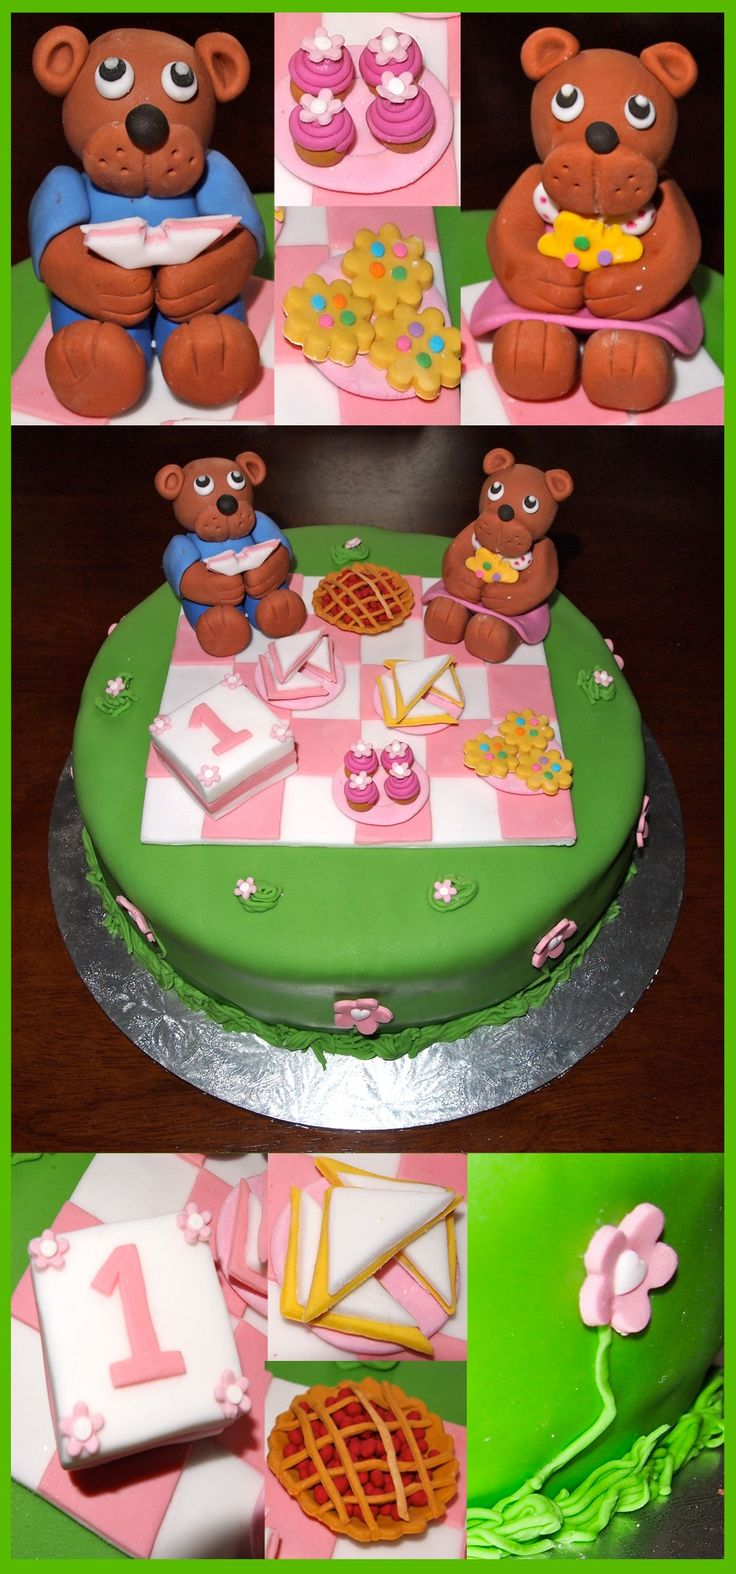 The cake that I made for my daughters 1st birthday cake. Teddy bears picnic cake with sugarcraft bears and food.